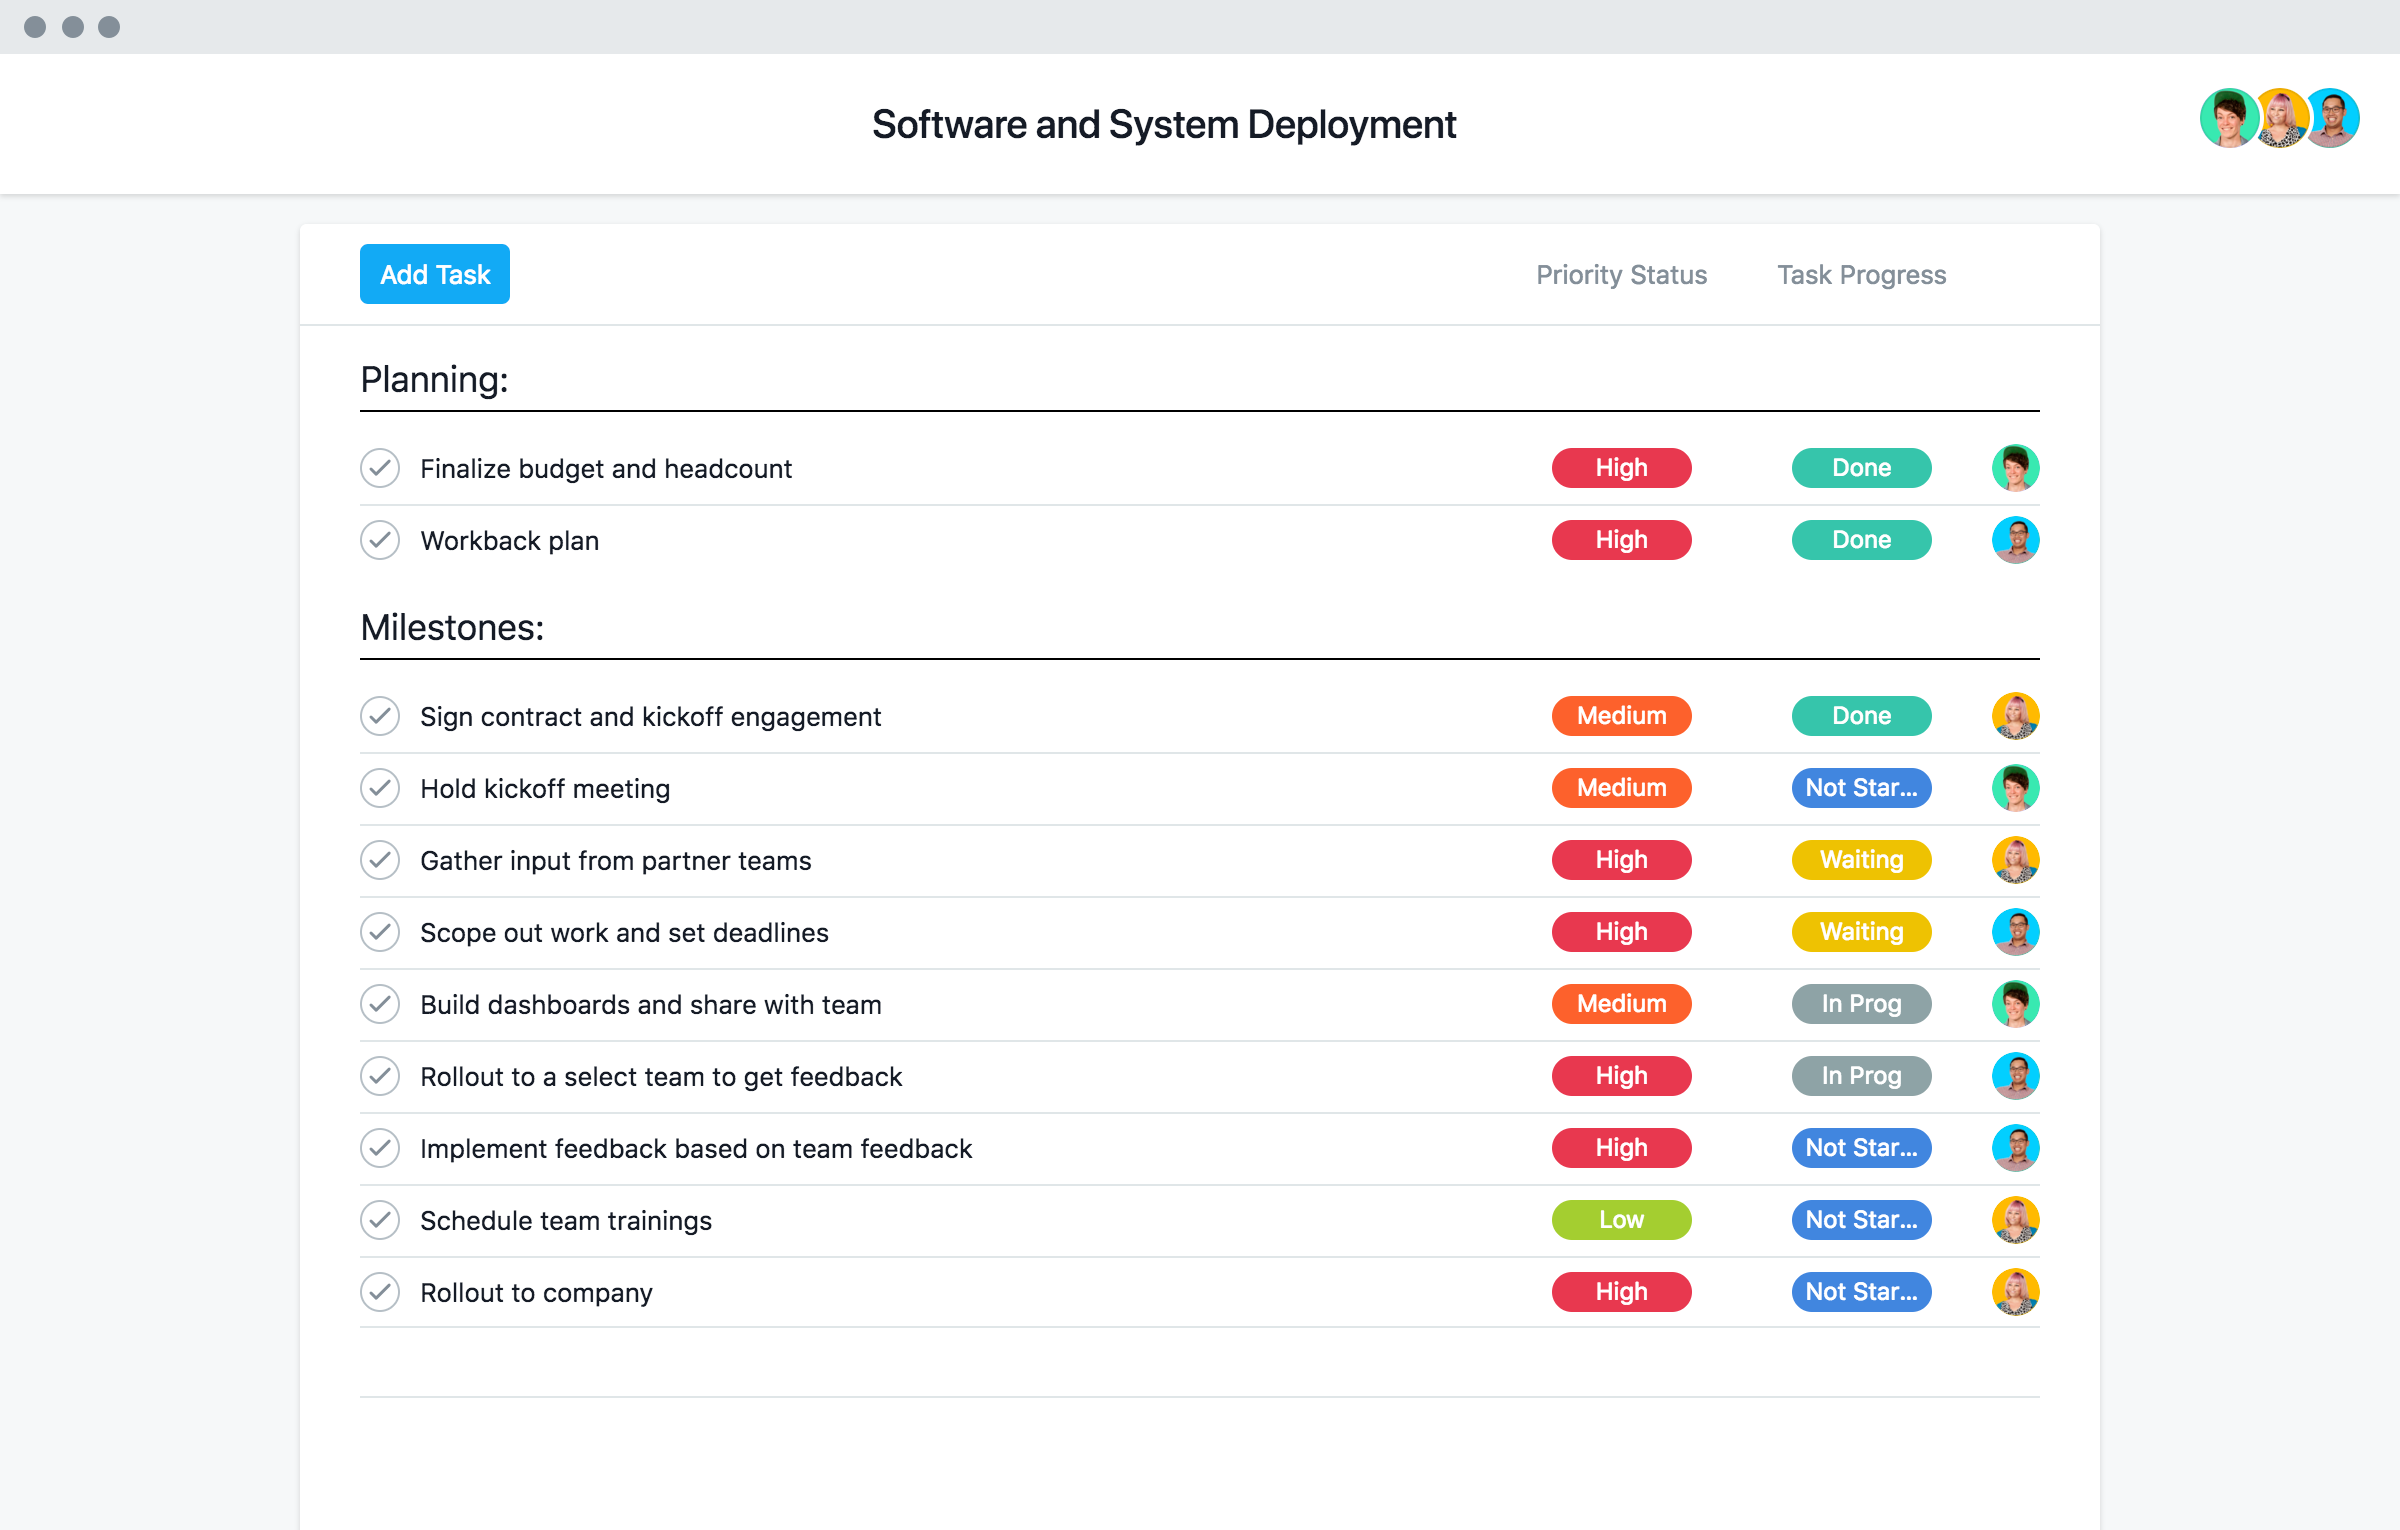 Software Deployment Checklist Template